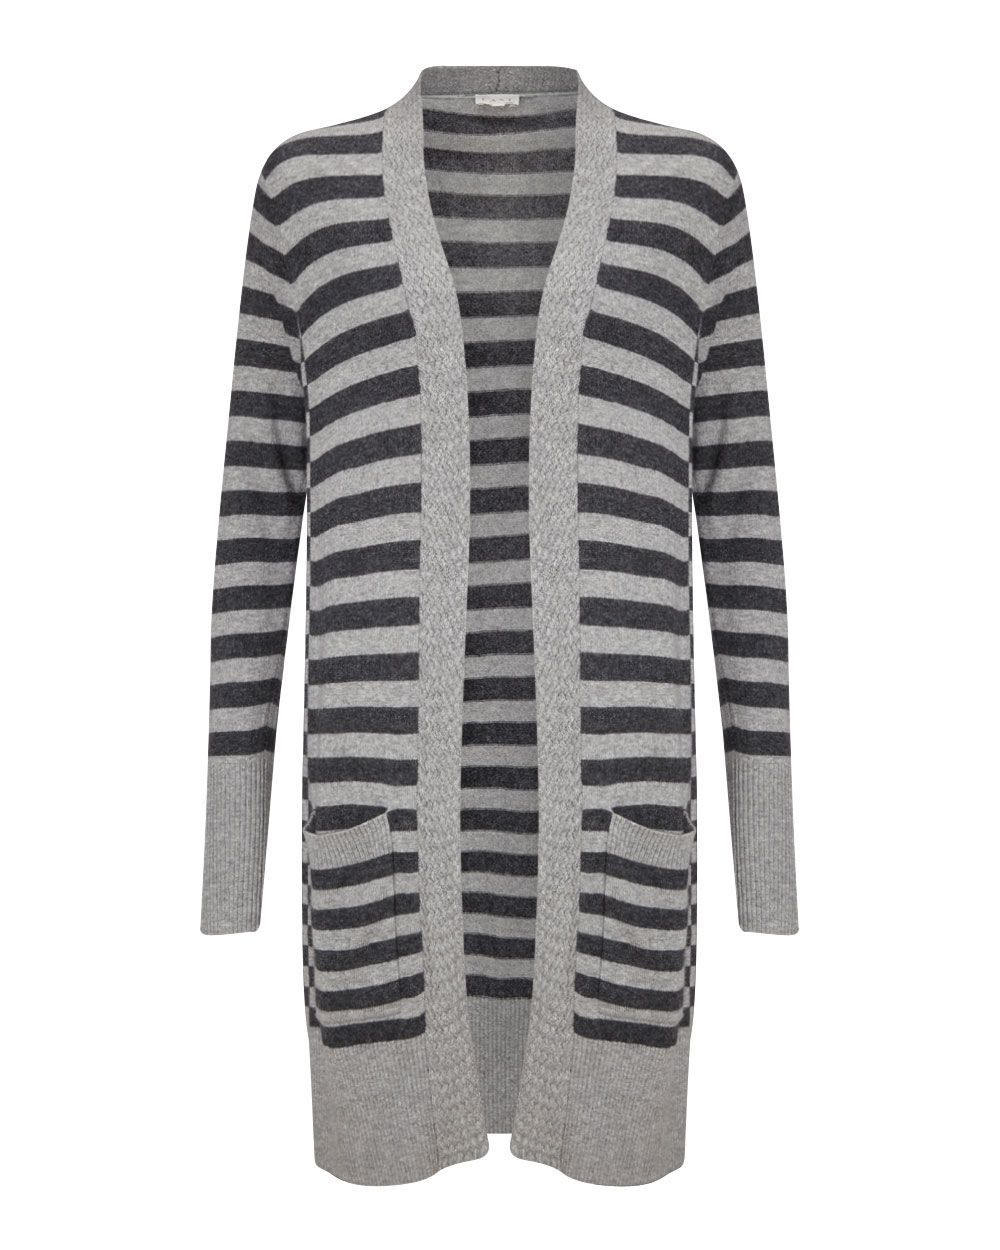 Stripe Knitted Cardigan, Grey - pattern: horizontal stripes; neckline: collarless open; style: open front; length: on the knee; secondary colour: charcoal; predominant colour: light grey; occasions: casual; fit: loose; sleeve length: long sleeve; sleeve style: standard; texture group: knits/crochet; pattern type: fabric; fibres: viscose/rayon - mix; multicoloured: multicoloured; season: a/w 2015; wardrobe: highlight